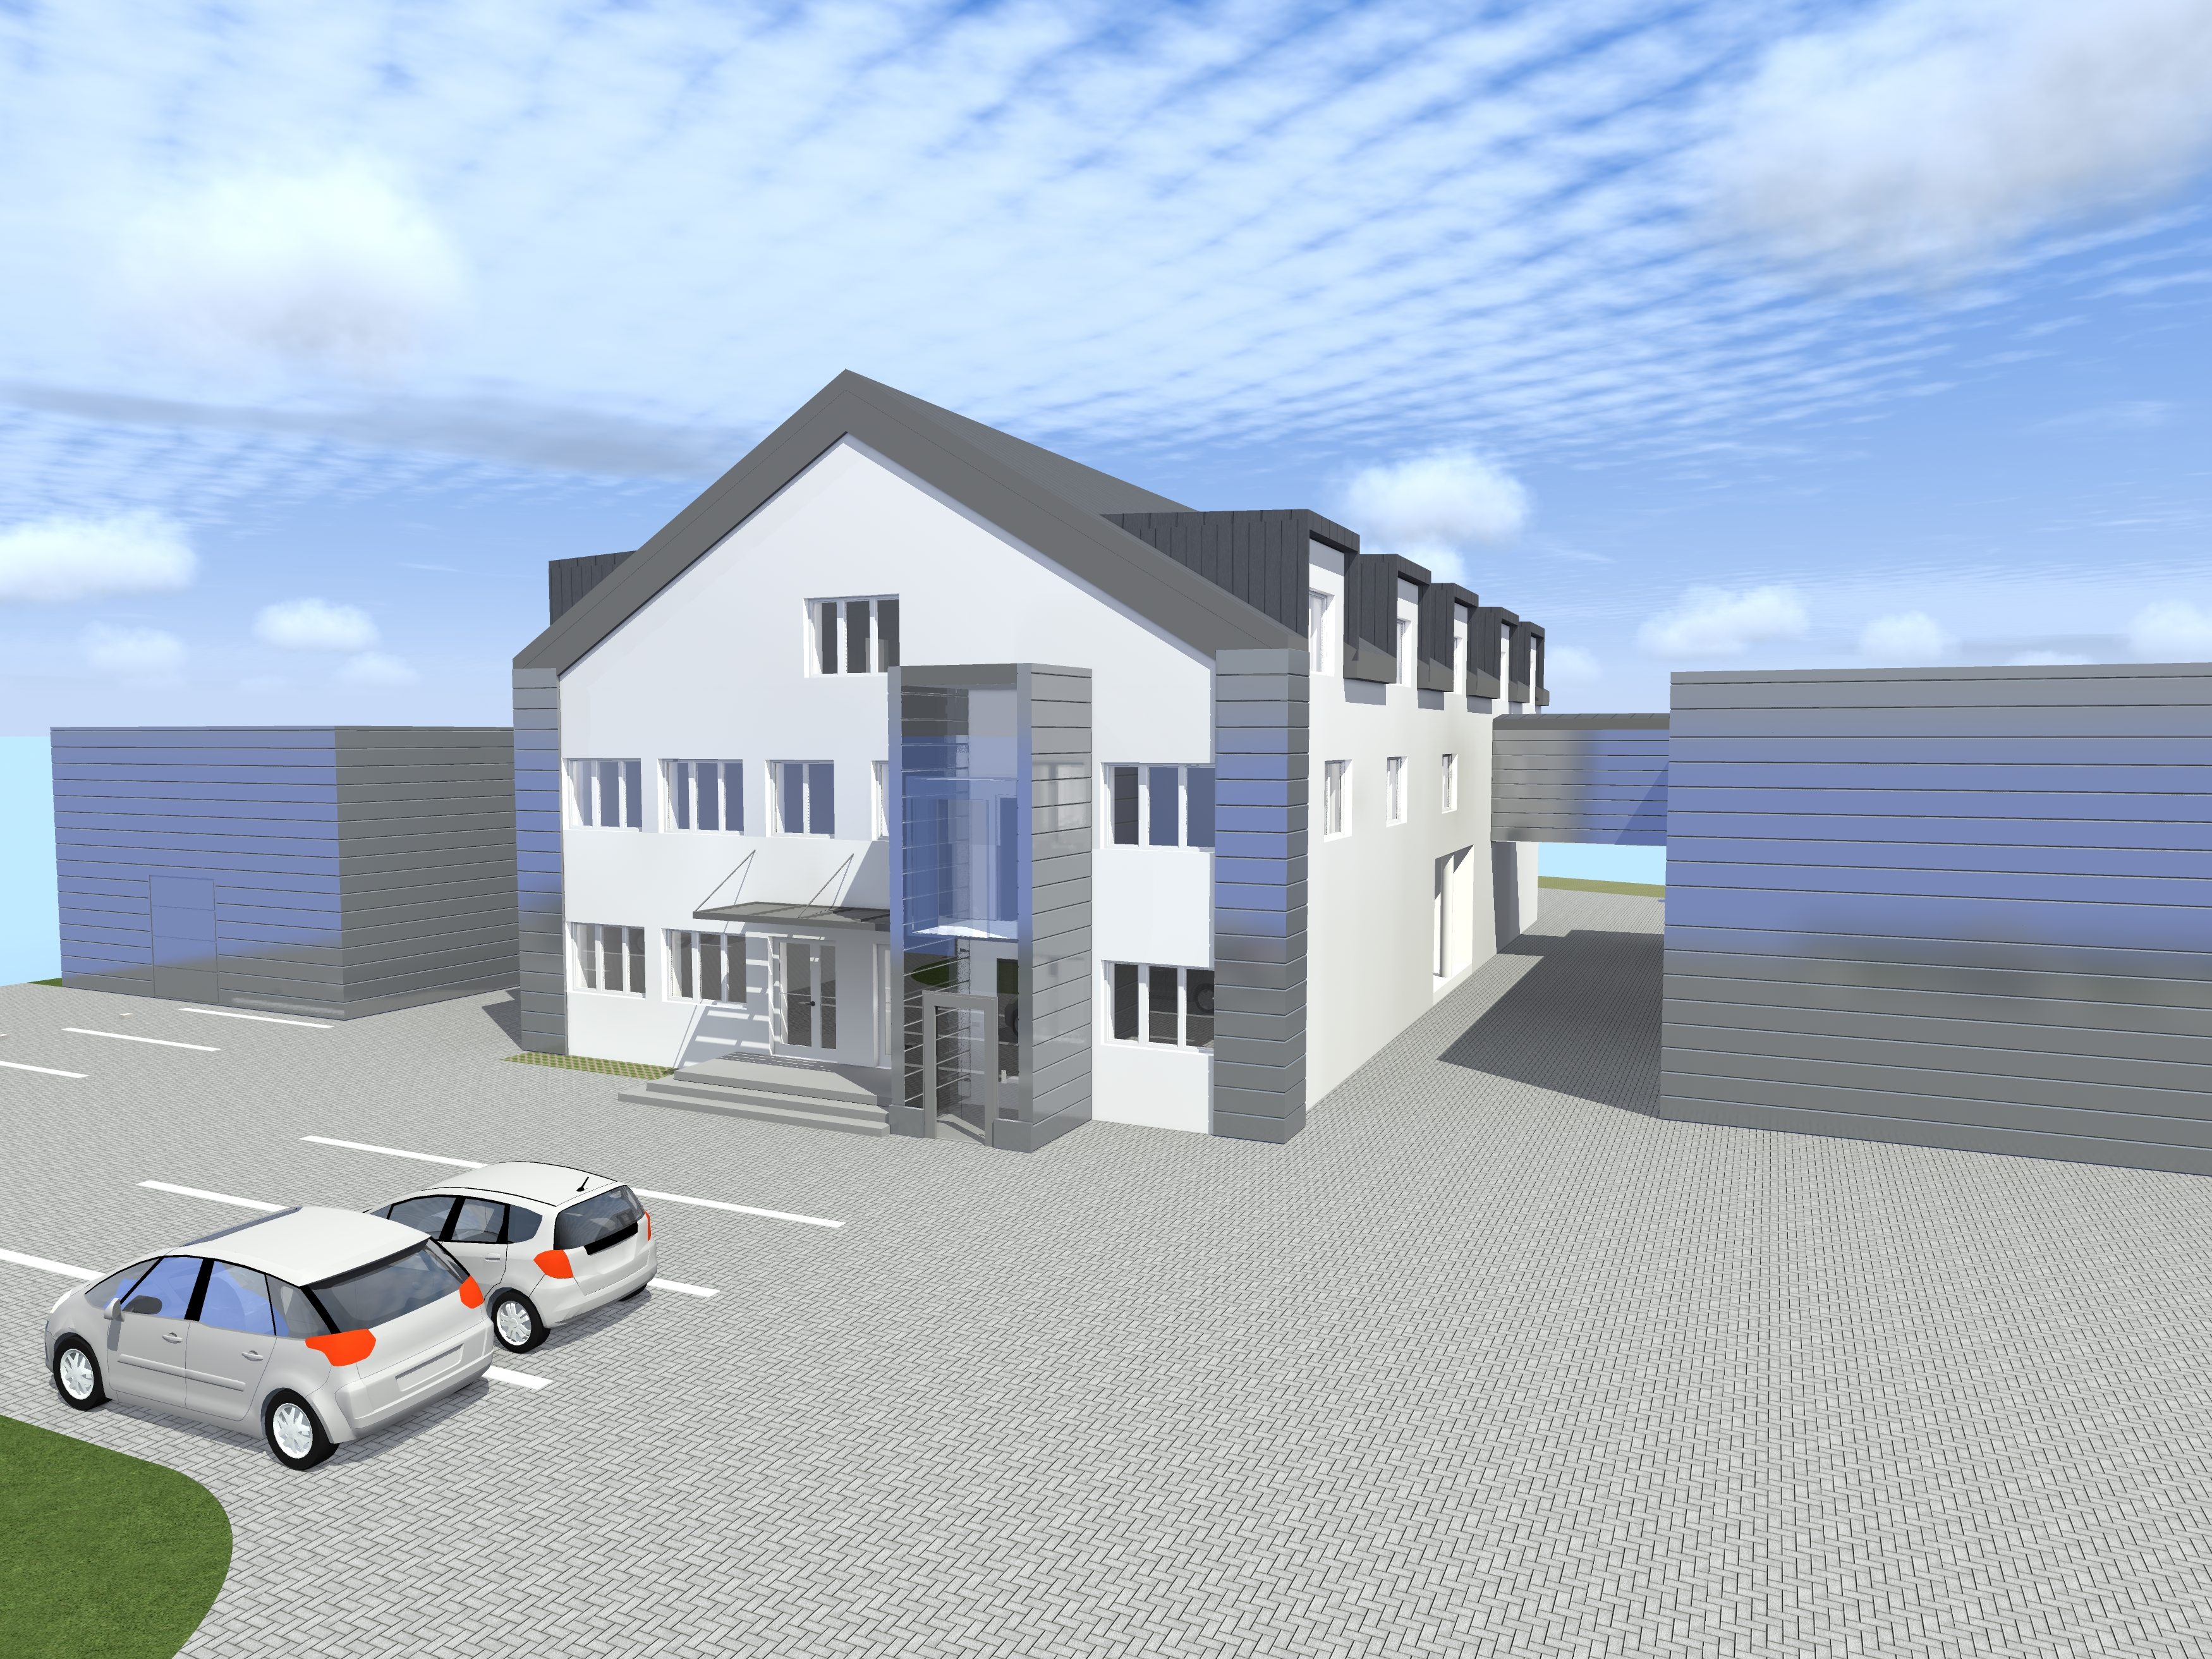 CONSTRUCTION AND EXECUTIVE DESIGN OF TWO WAREHOUSES WITH A CONNECTOR, LOCATED IN PŁOCK AT CHOPIN 5 STREET.